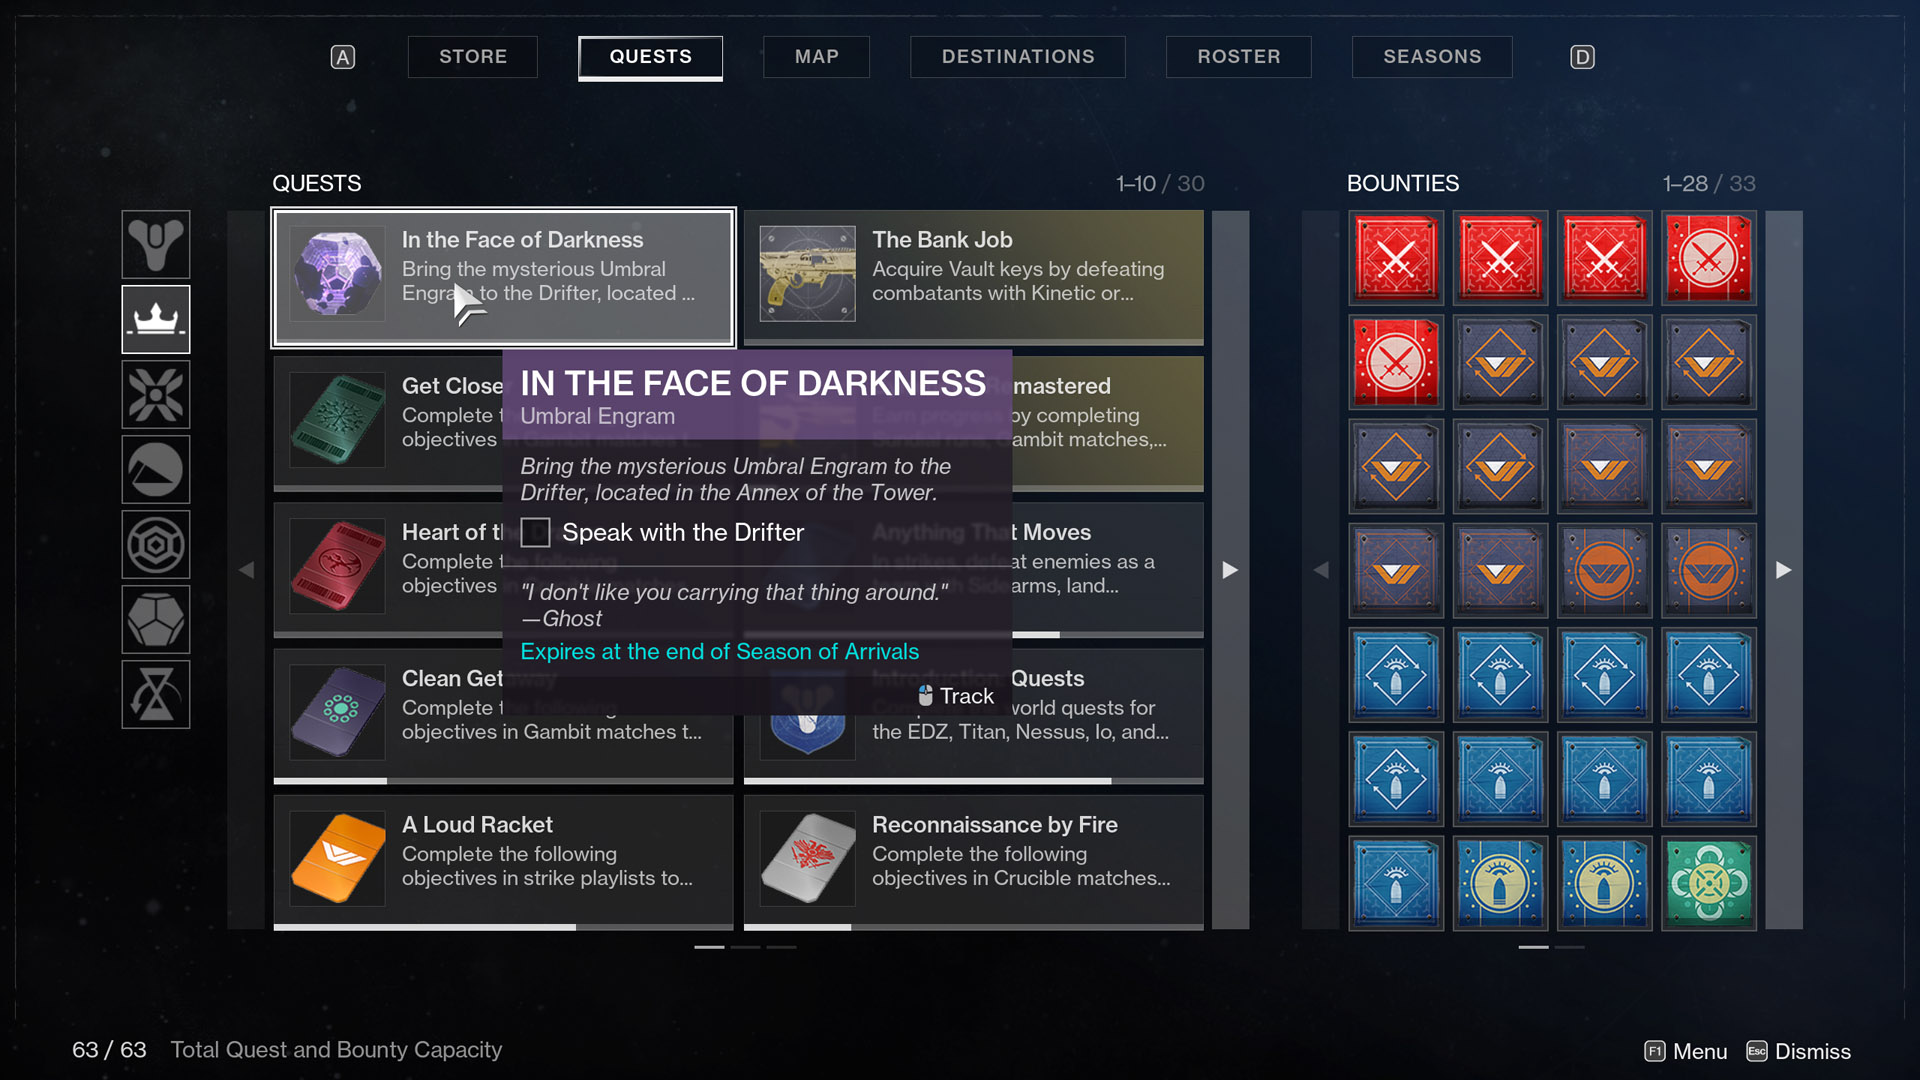 destiny 2 season of arrivals in the face of darkness umbral engram